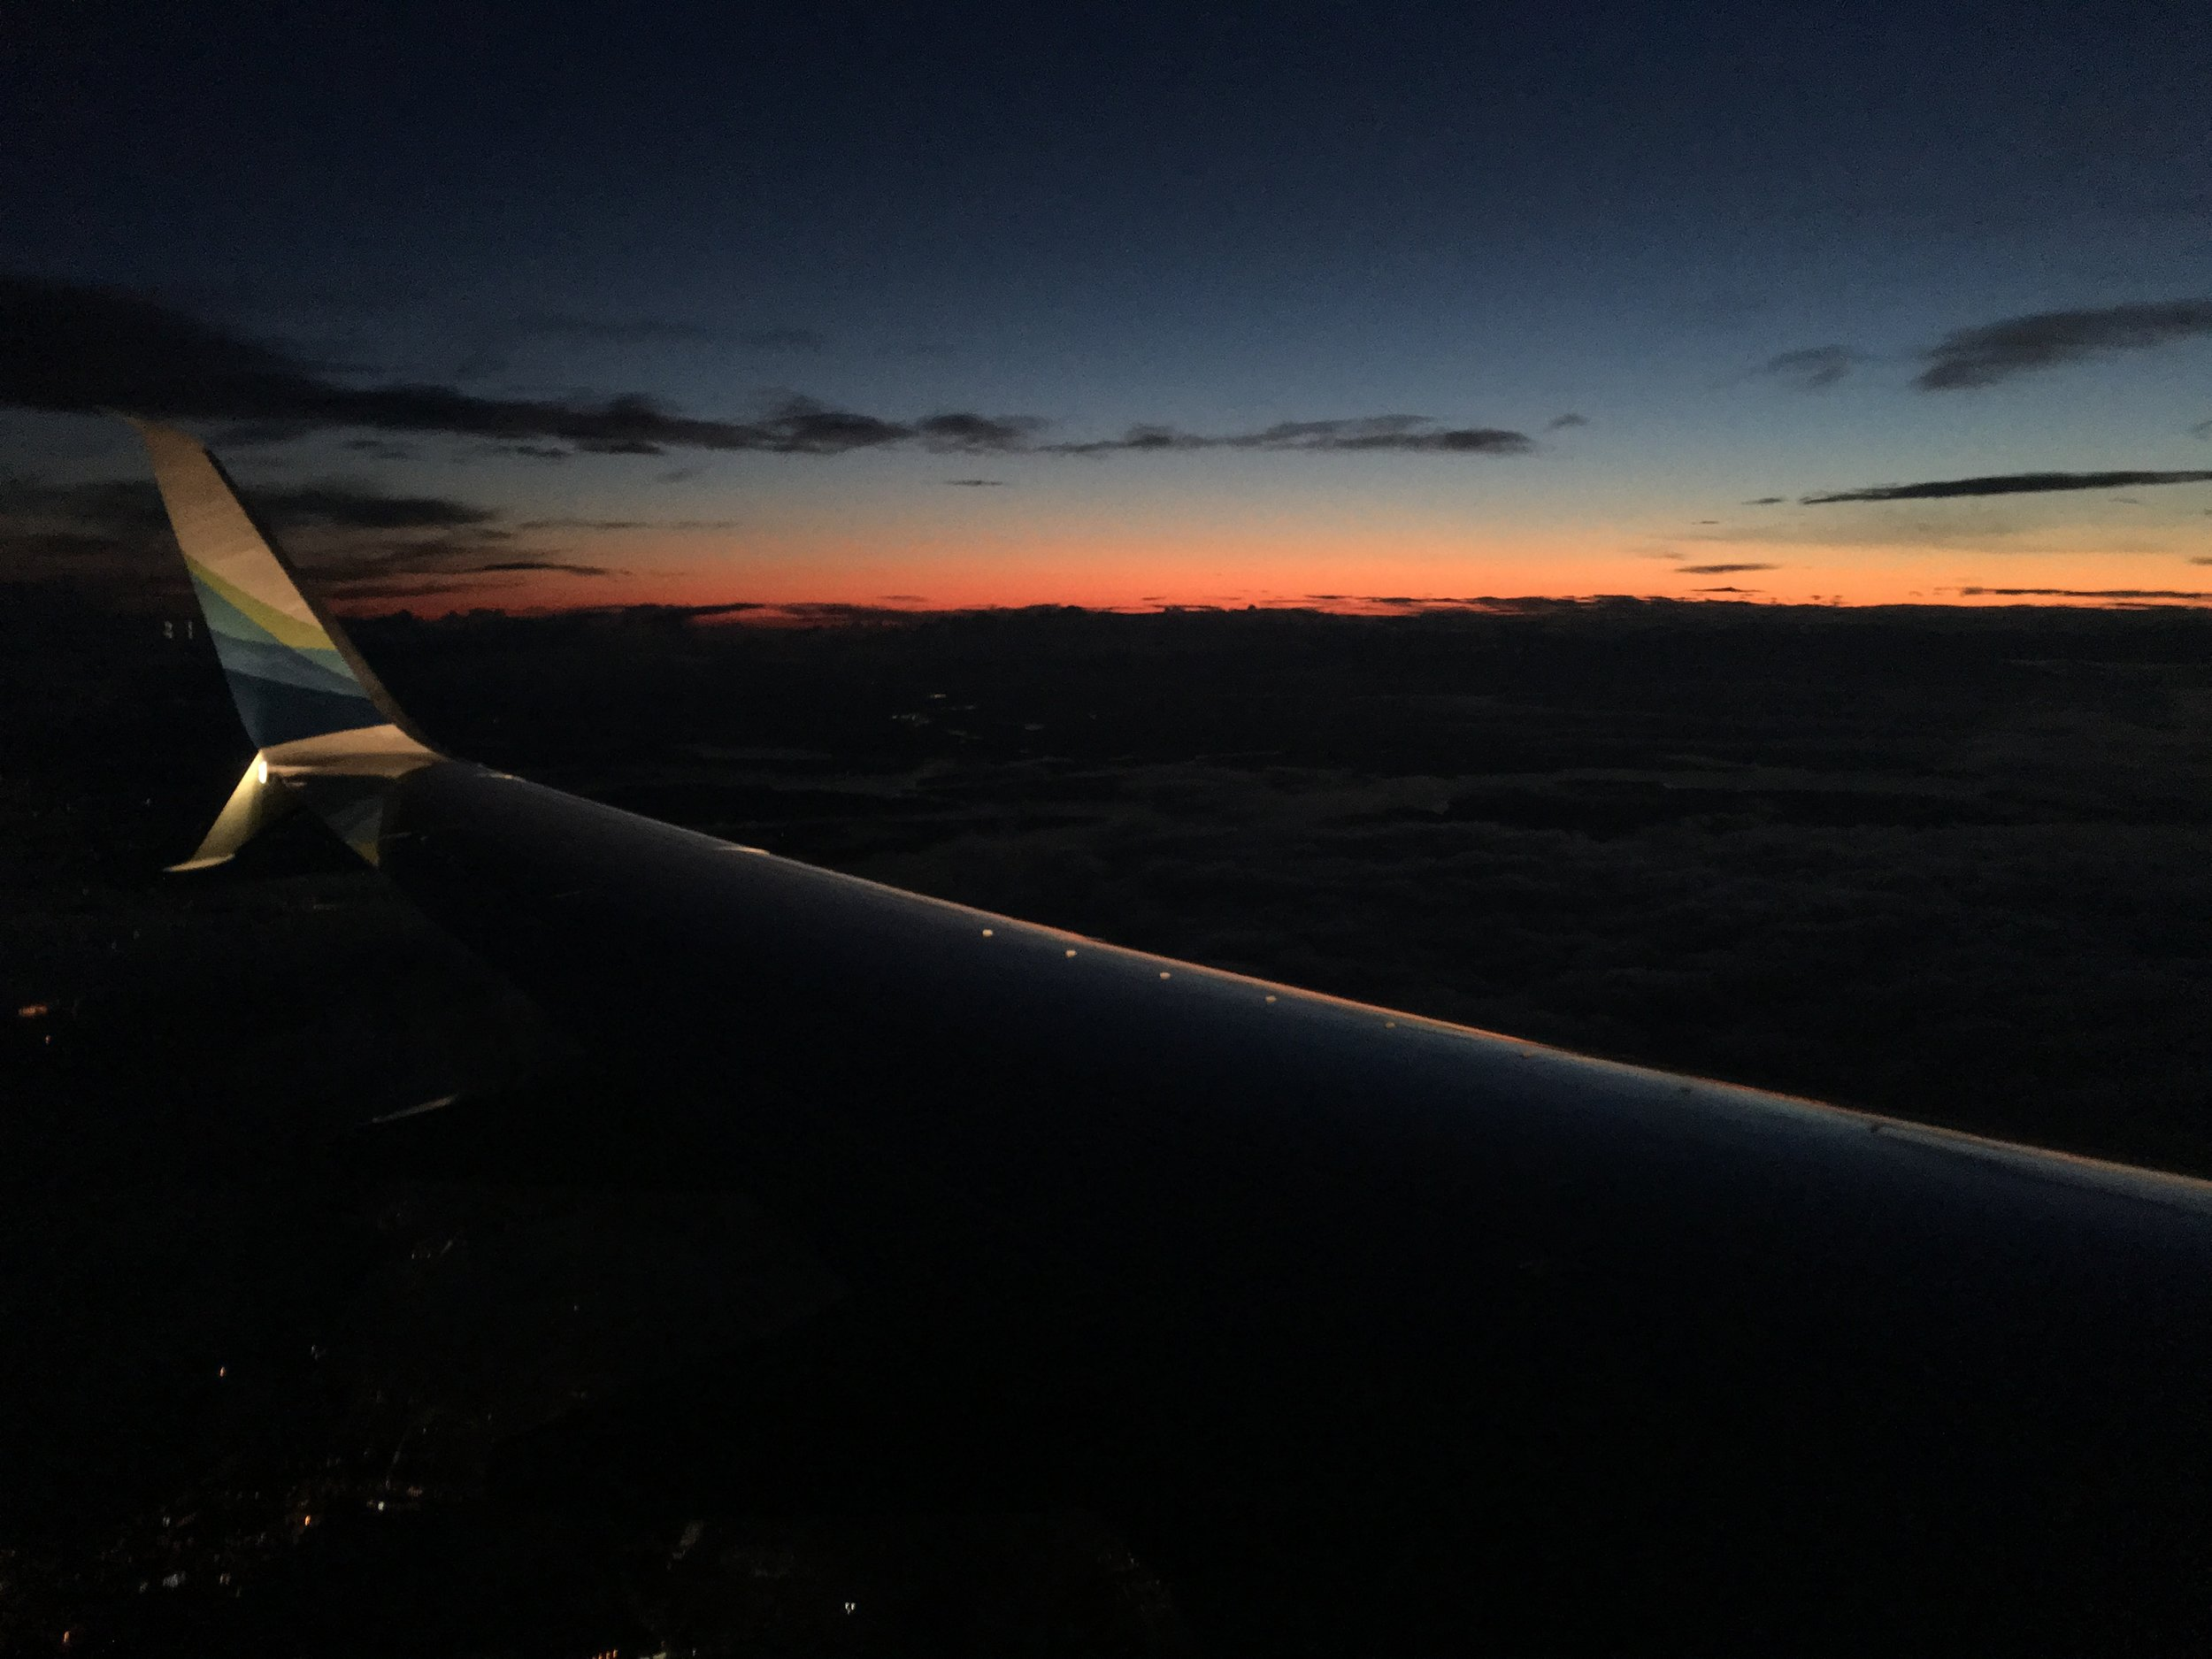 Funny thing about flying from Santa Monica to Seattle in summer. You chase the sunset the whole way.